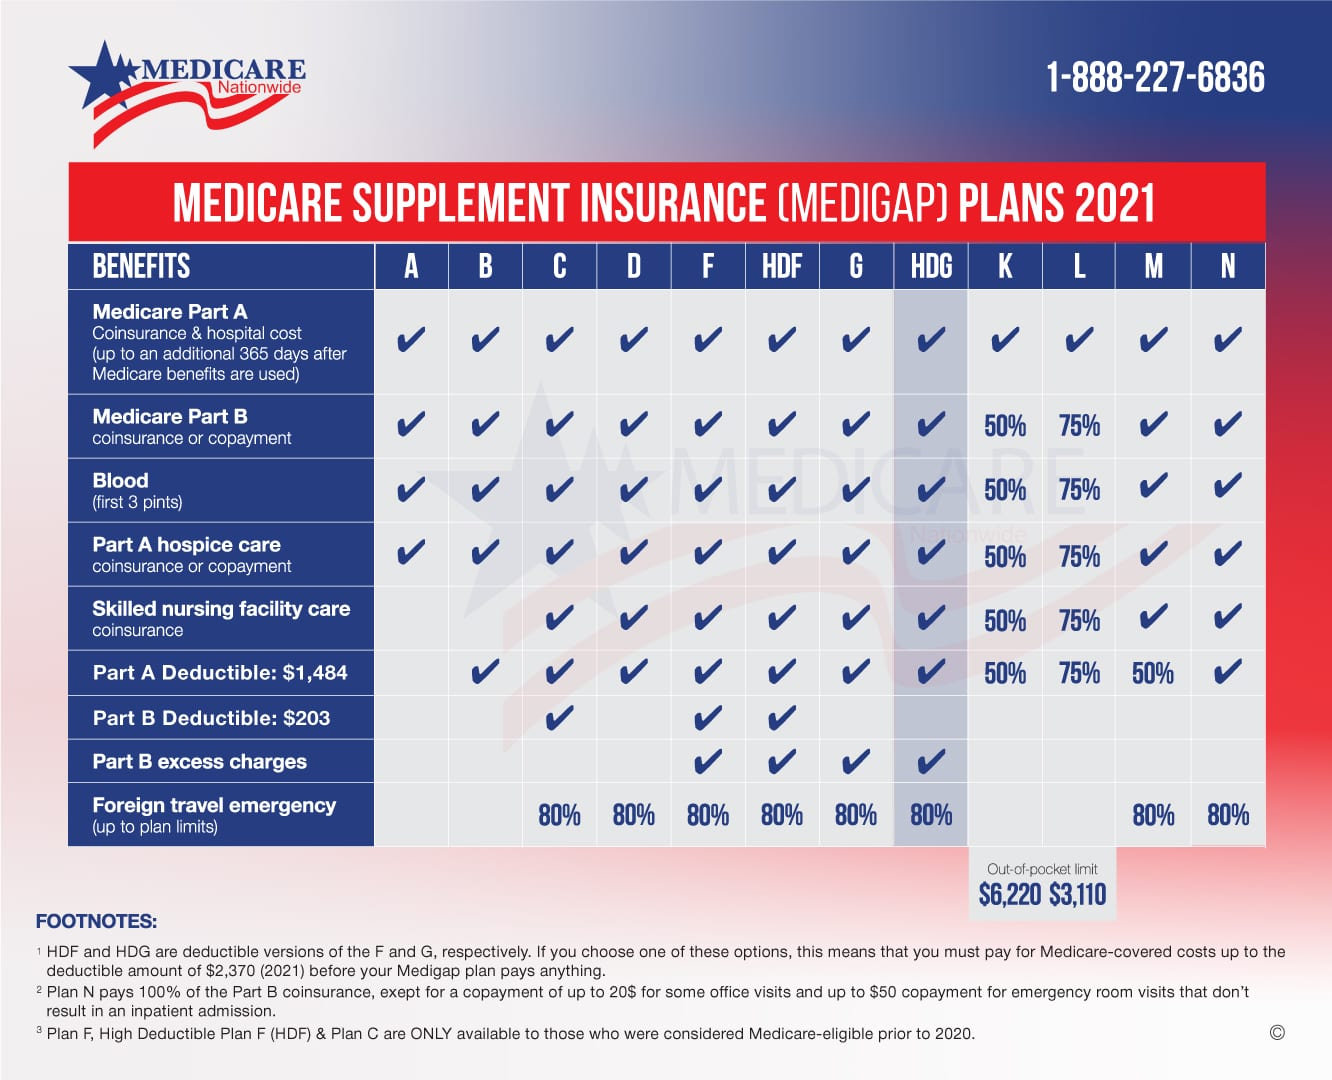 Medicare Supplement Chart 2021 - High Deductible Plan G (HDG)